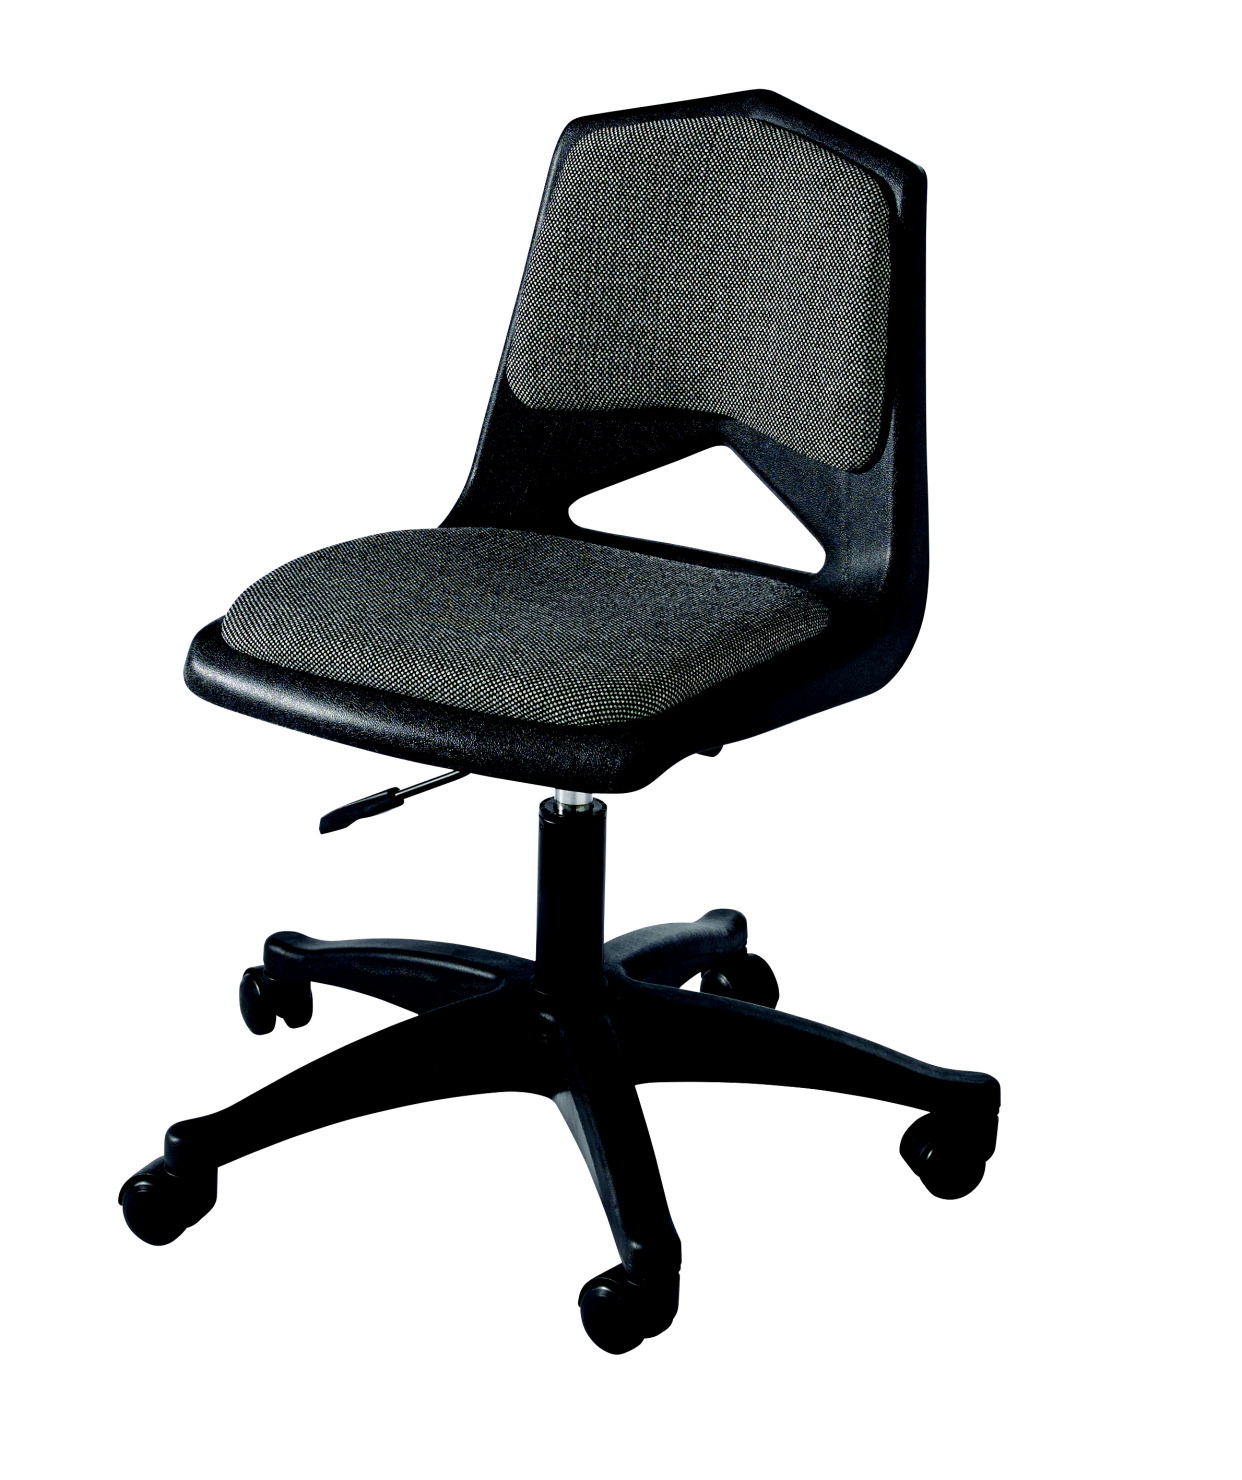 Royal Seating 1100 Pneumatic Lift Padded Chair with Casters, 17-3/4 to 22-1/4 Inch Seat, Various Options